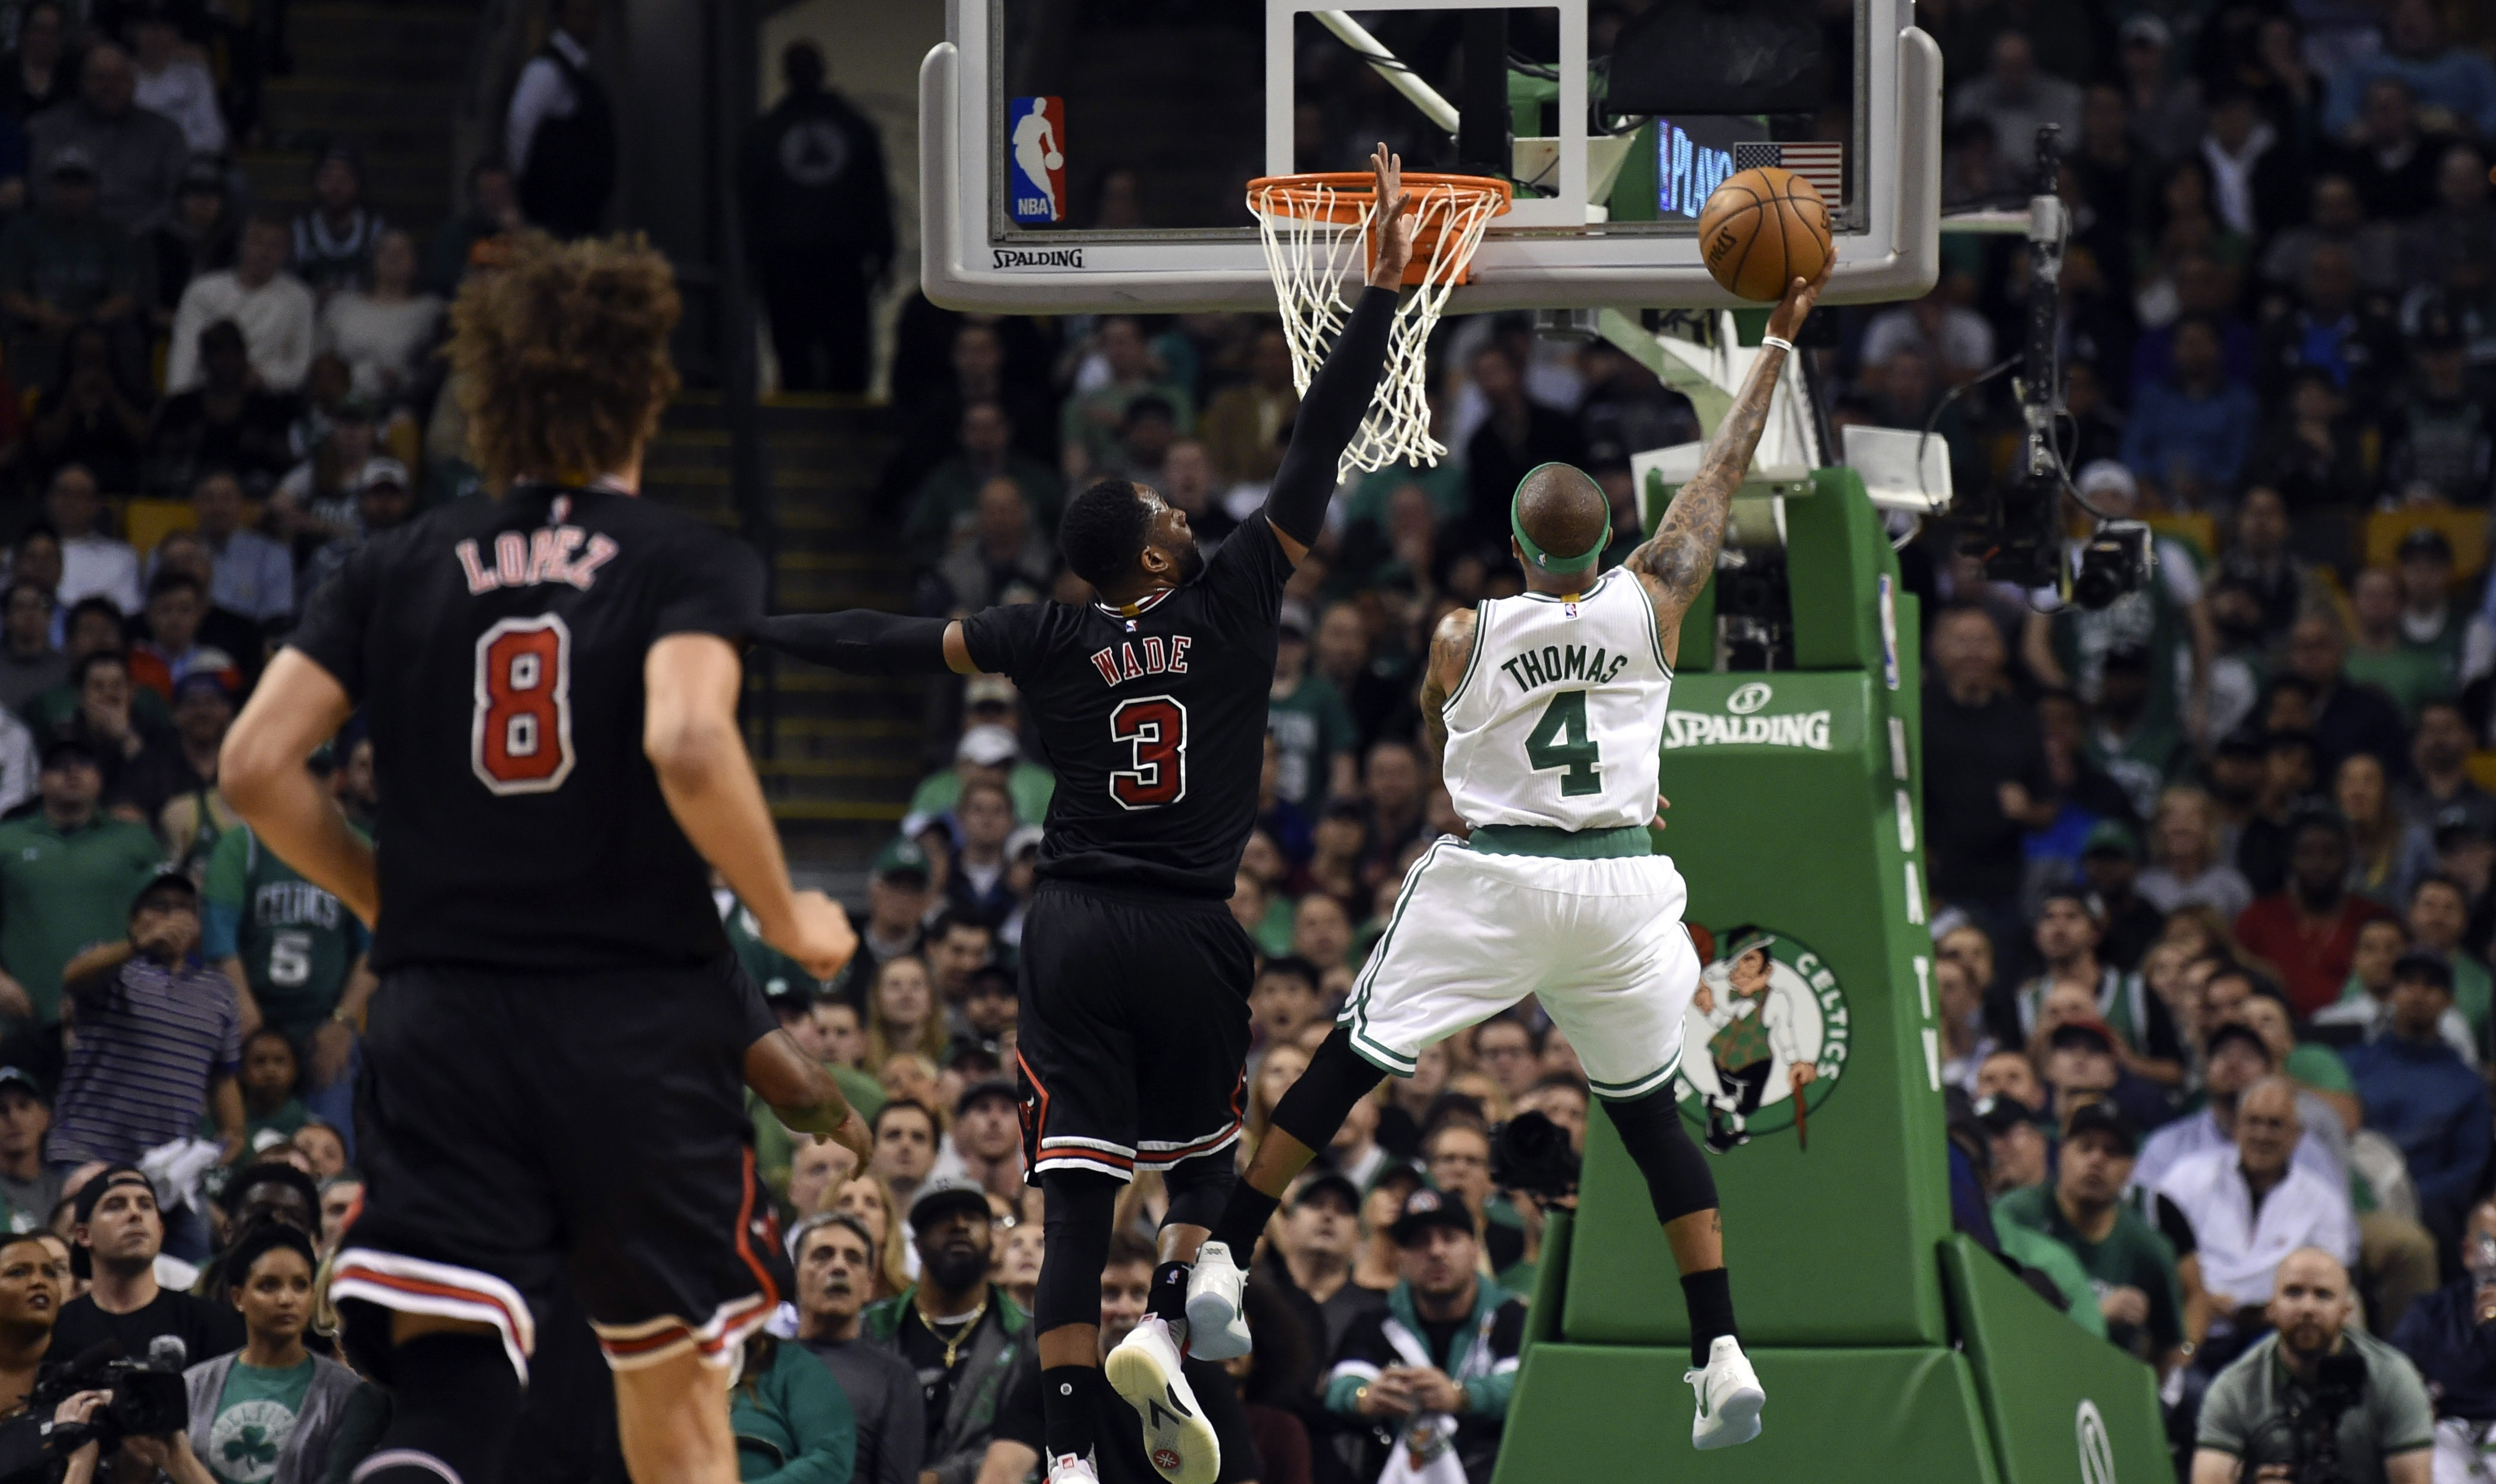 Apr 26, 2017; Boston, MA, USA; Boston Celtics guard Isaiah Thomas (4) lays the ball over the reach of Chicago Bulls guard Dwyane Wade (3) during the first half in game five of the first round of the 2017 NBA Playoffs at TD Garden. Mandatory Credit: Bob DeChiara-USA TODAY Sports